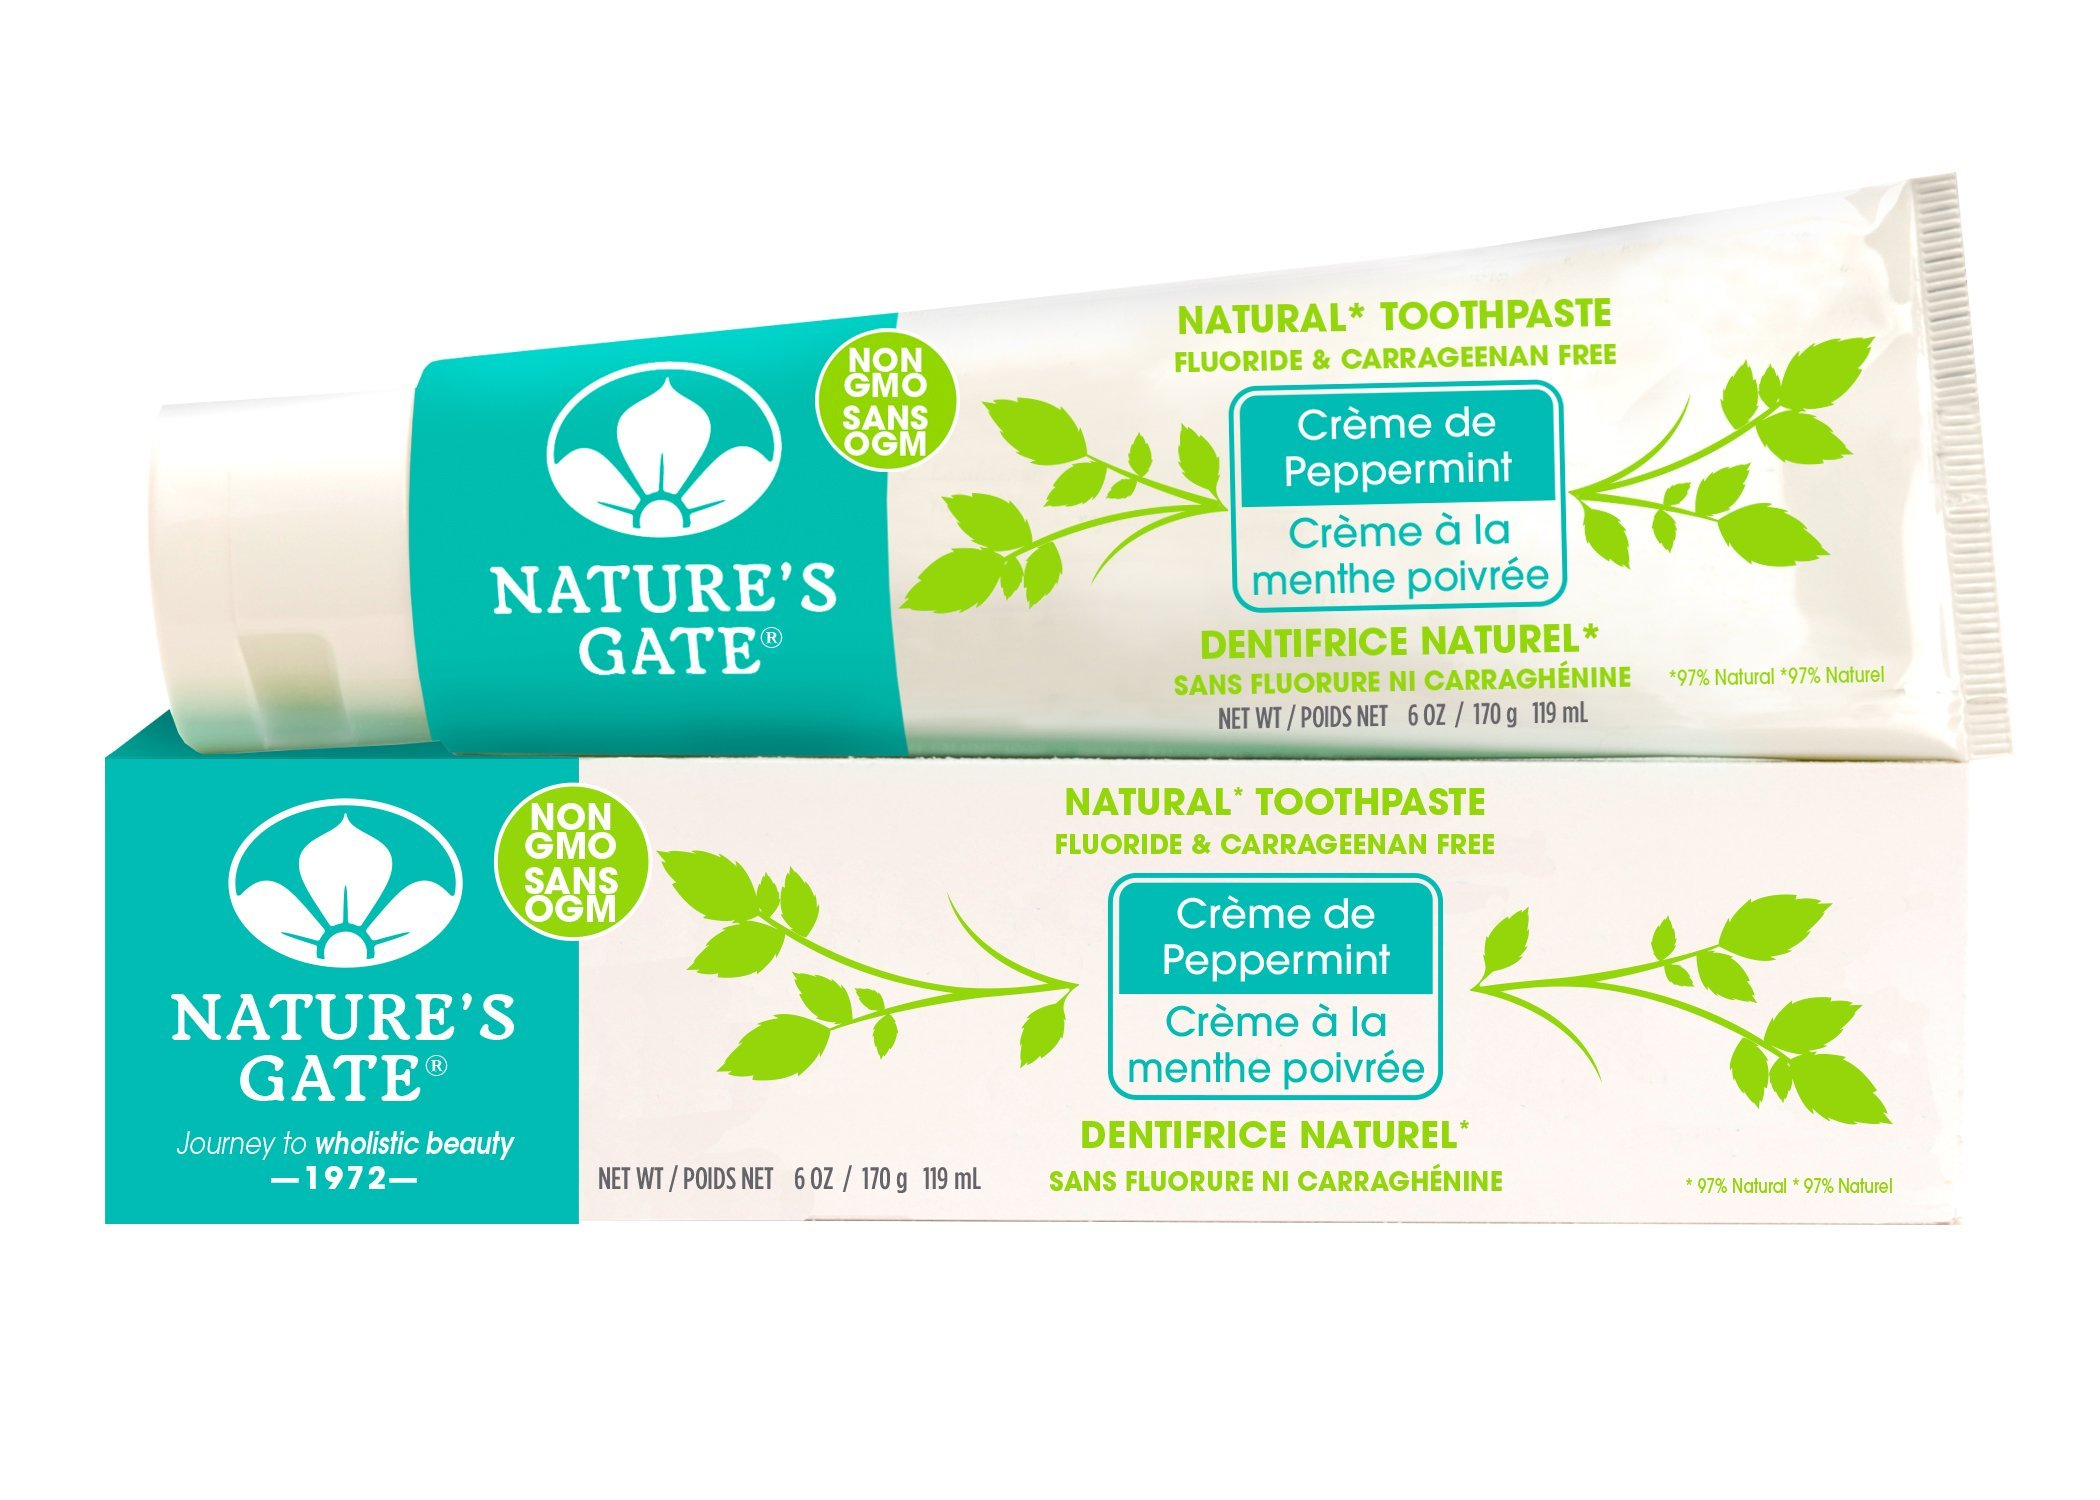 The Truth About Natural Toothpaste